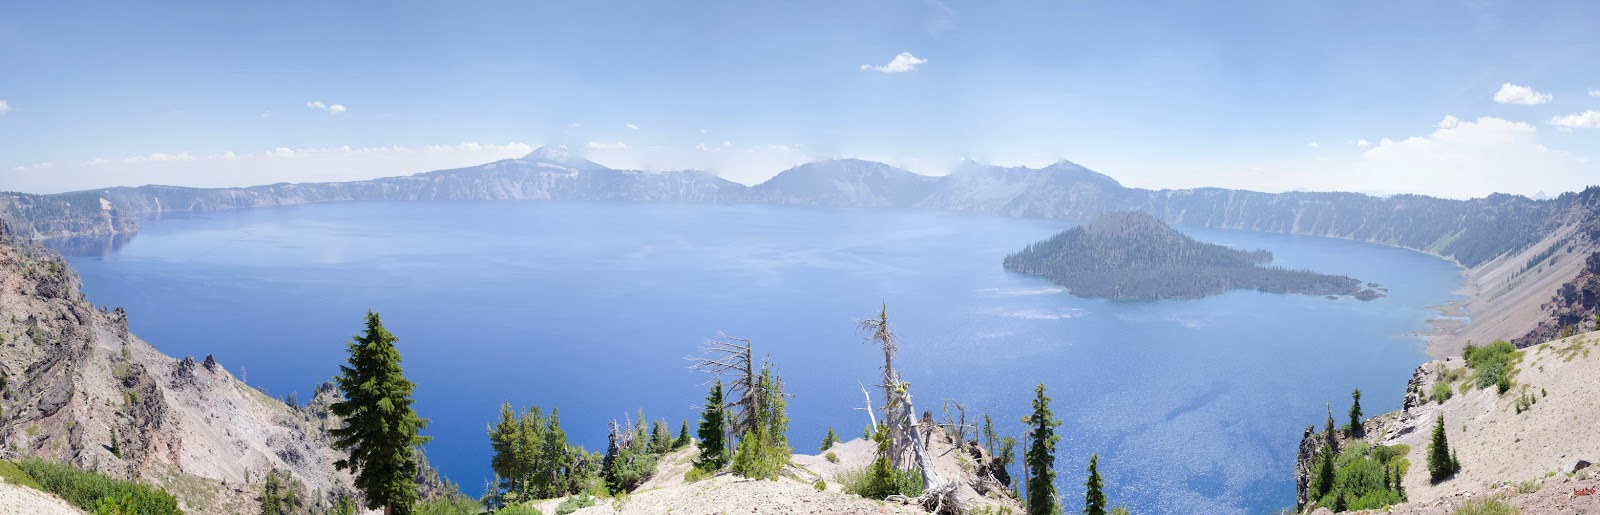 Crater Lake National Park Oregon Merriam Point